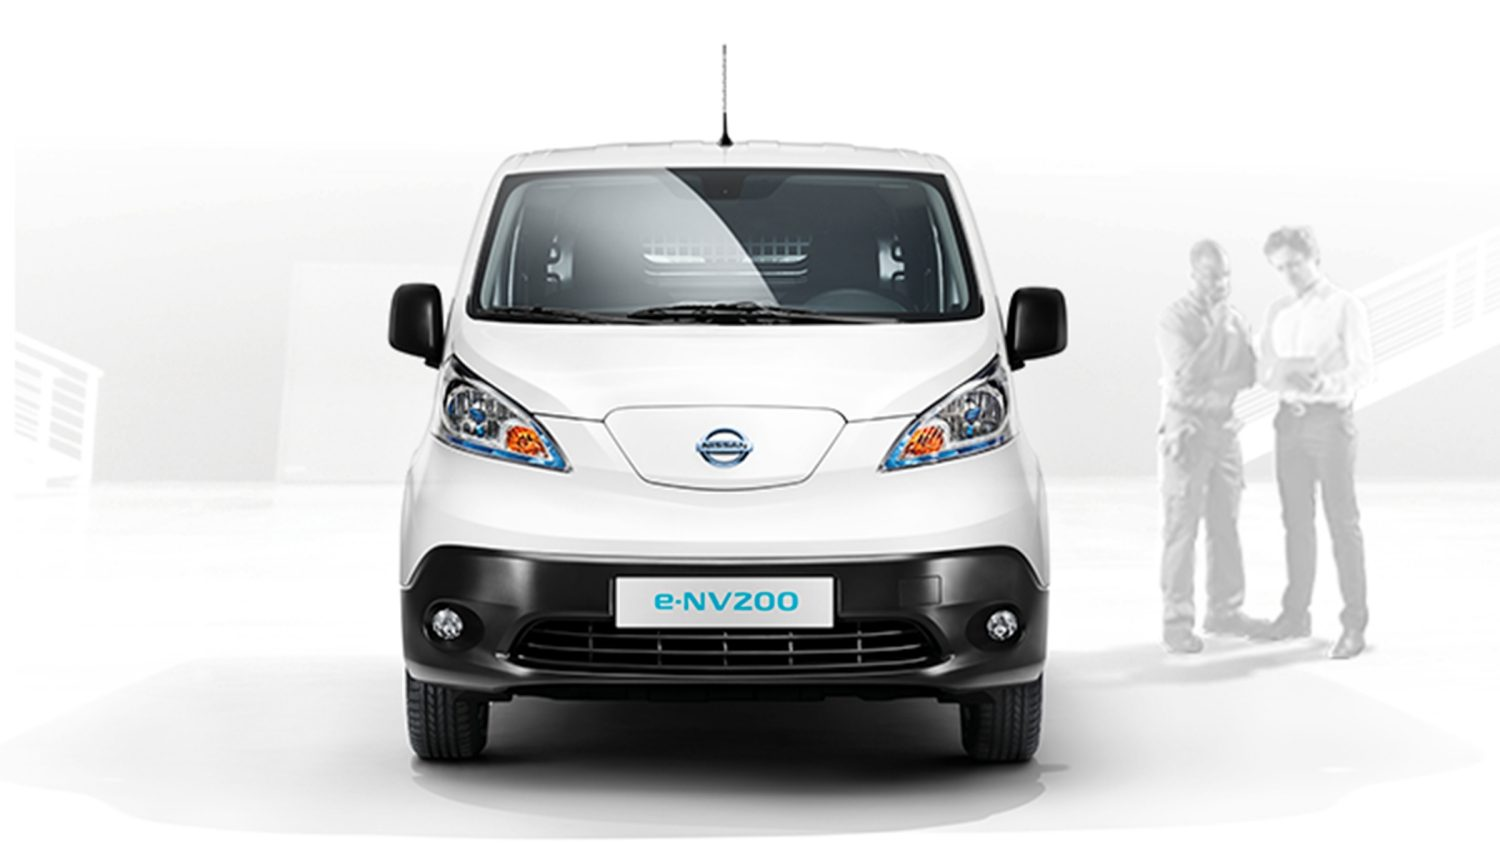 New Nissan e-NV200 front view